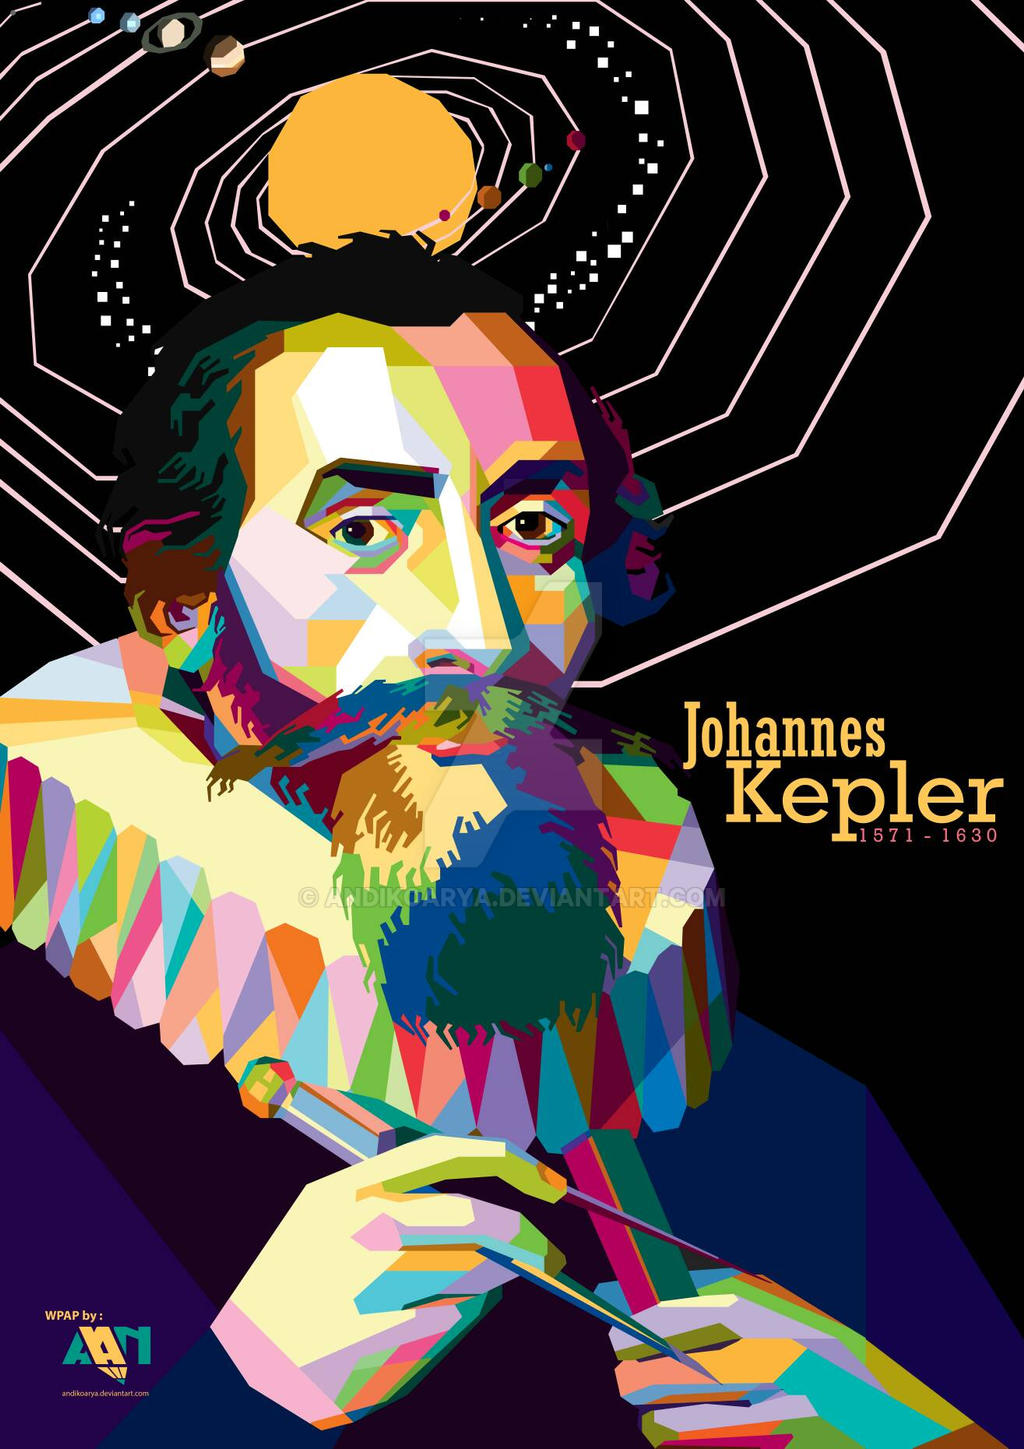 Johannes Kepler on WPAP